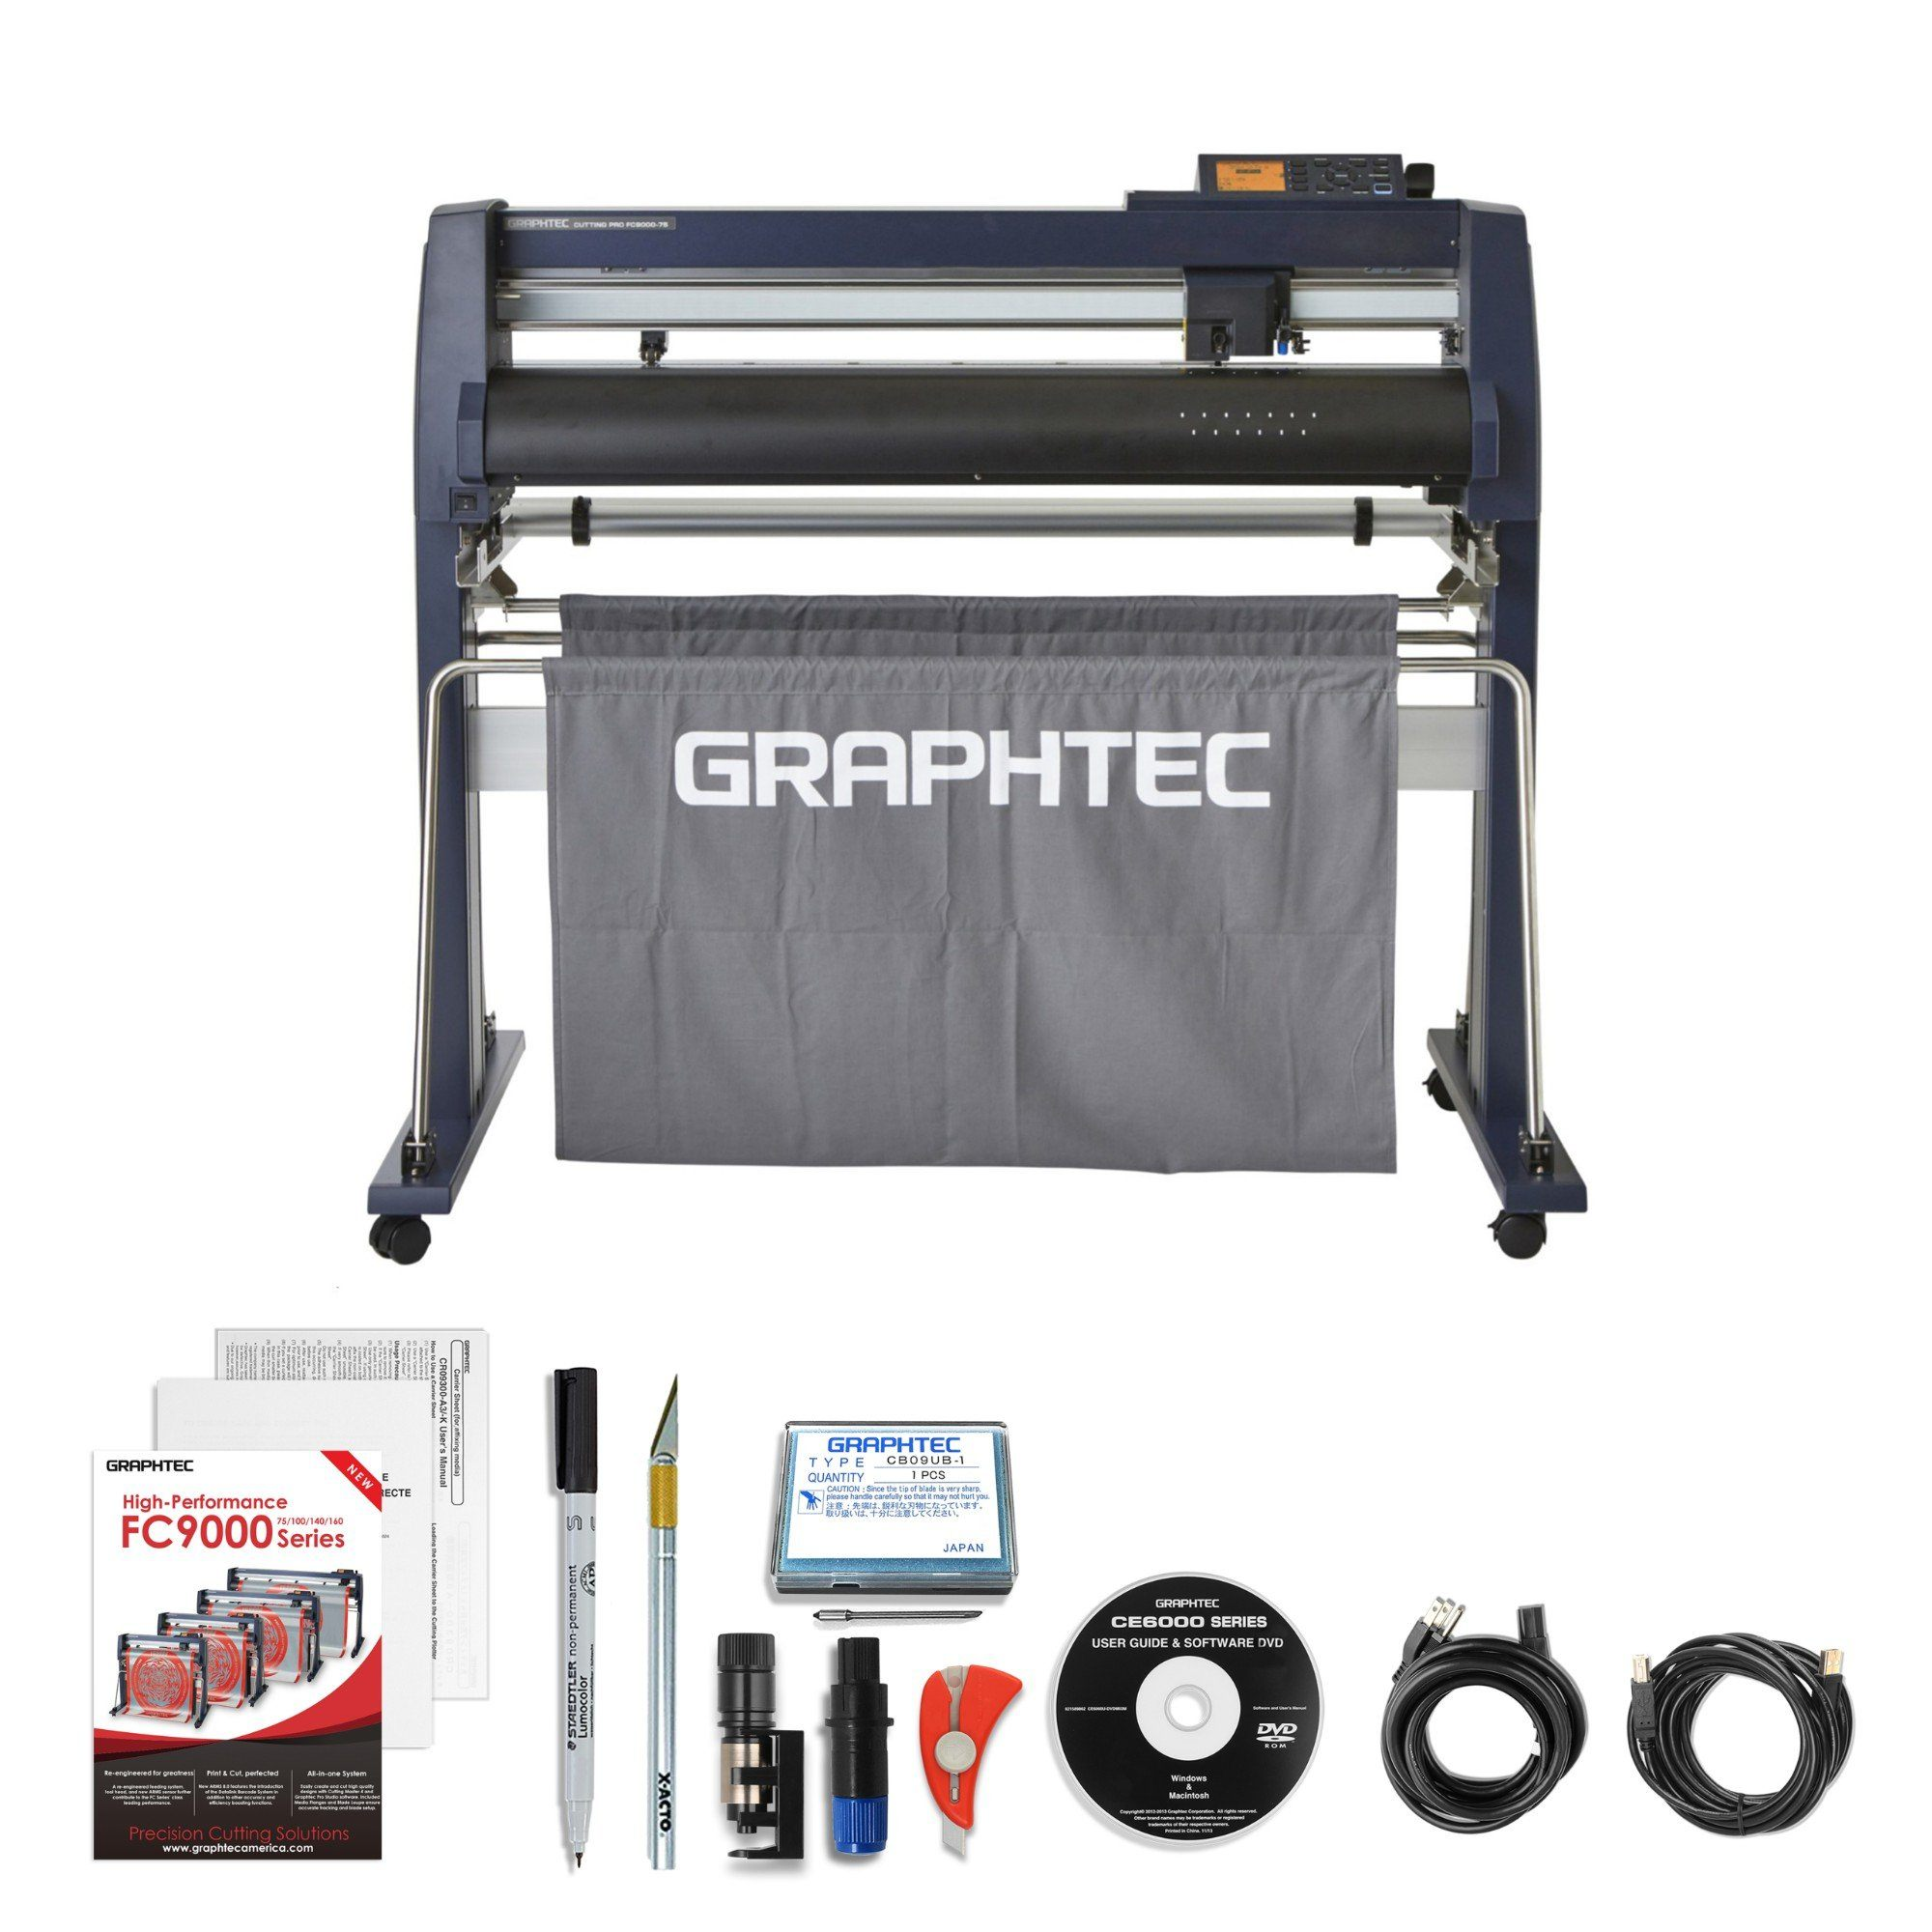 Graphtec FC9000 Series Pro Cutting Plotter Review